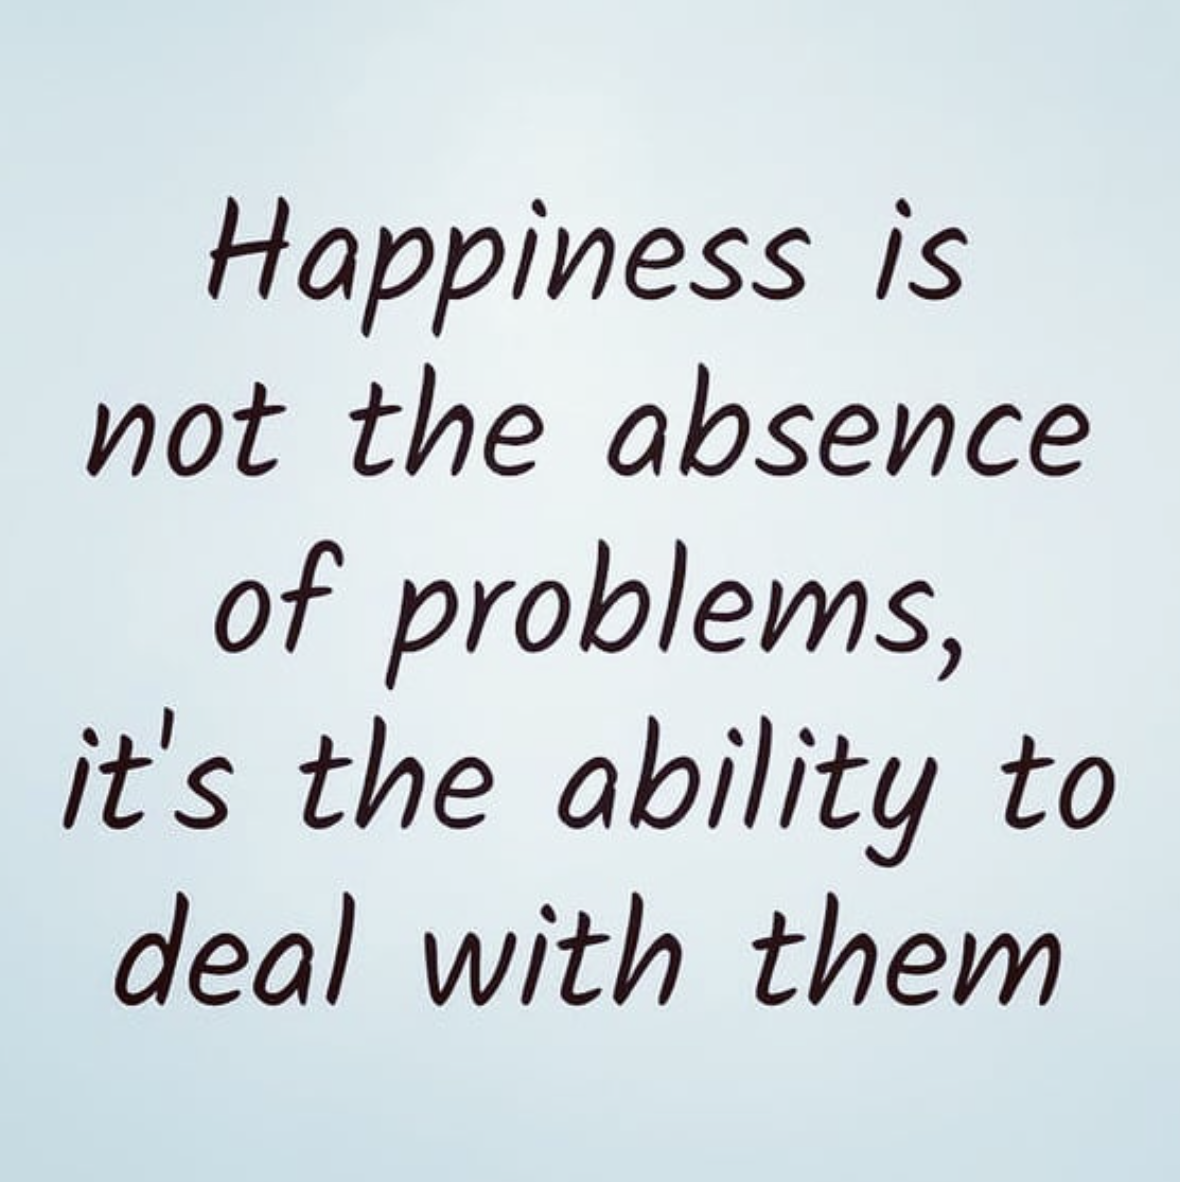 [Image] Happiness is not the absence of problems, it's the ability to deal with them.